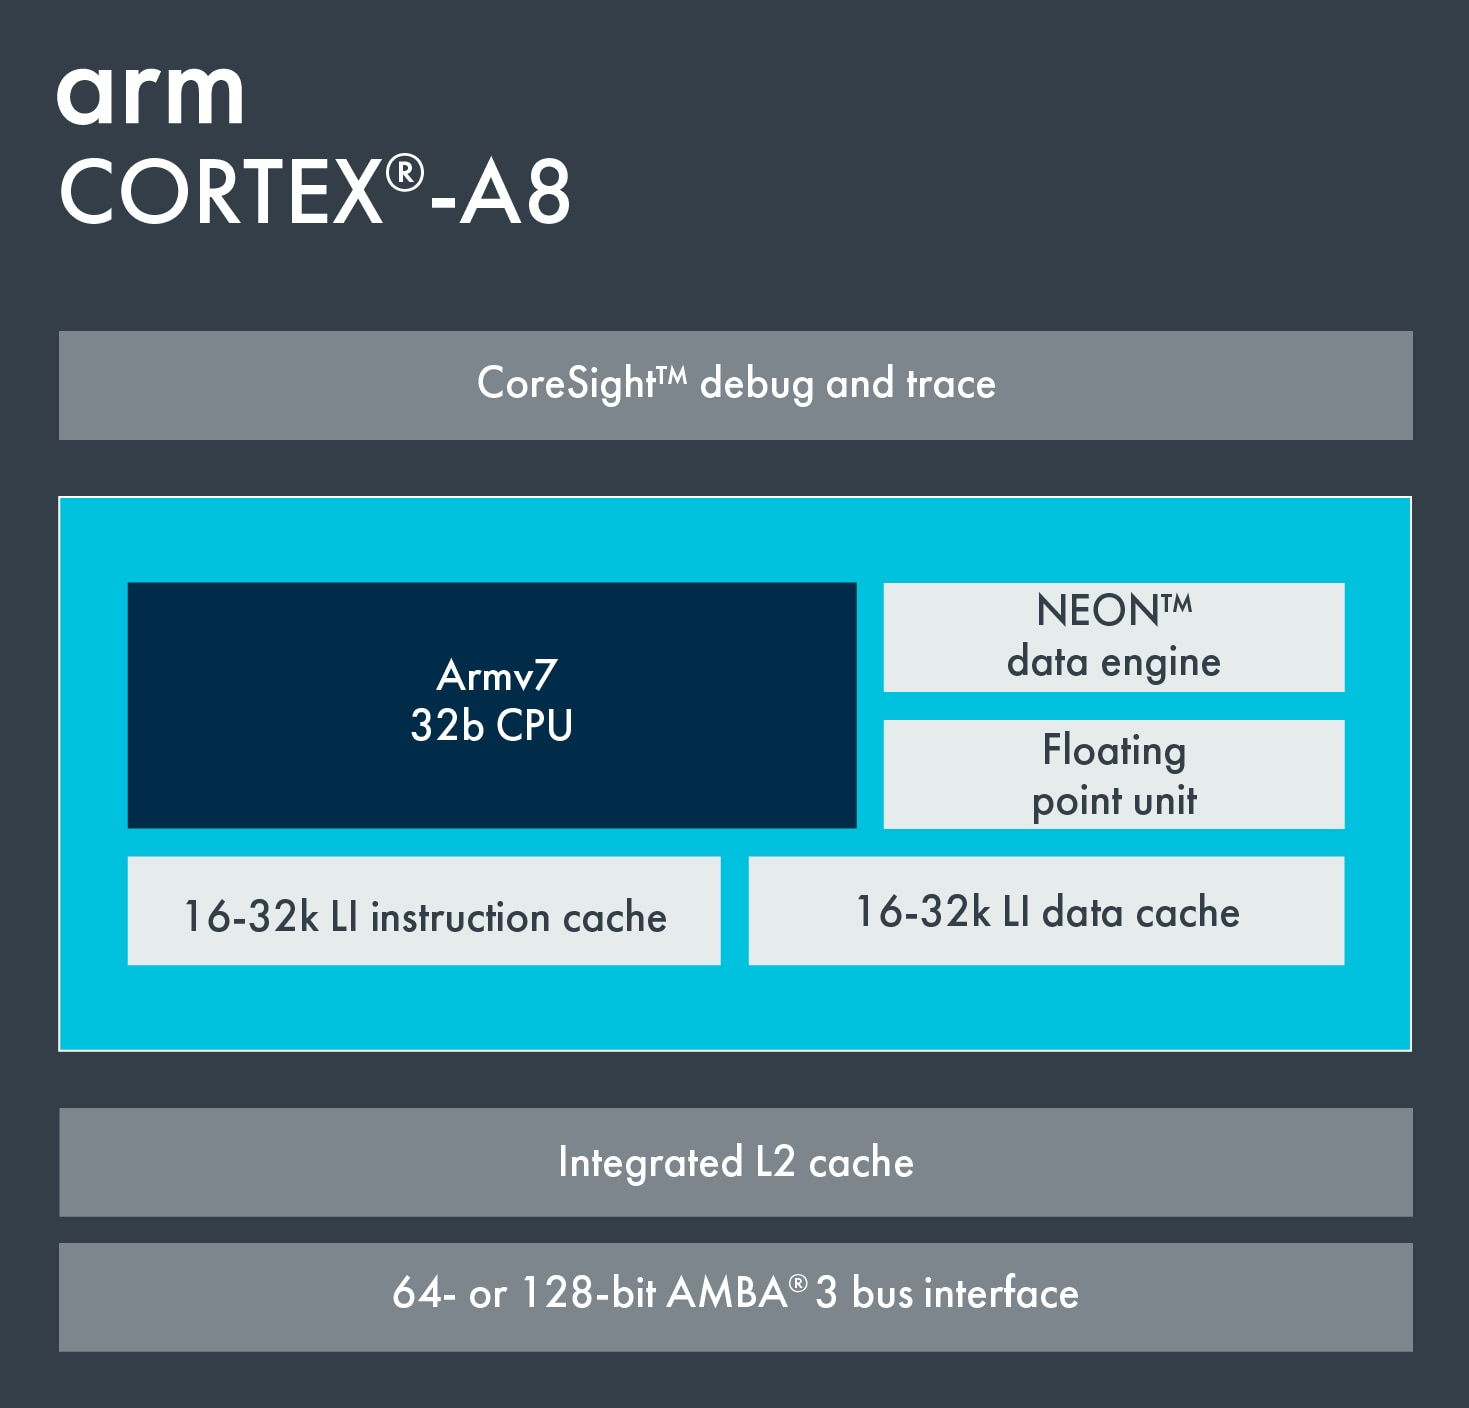 Information on Cortex-A8.